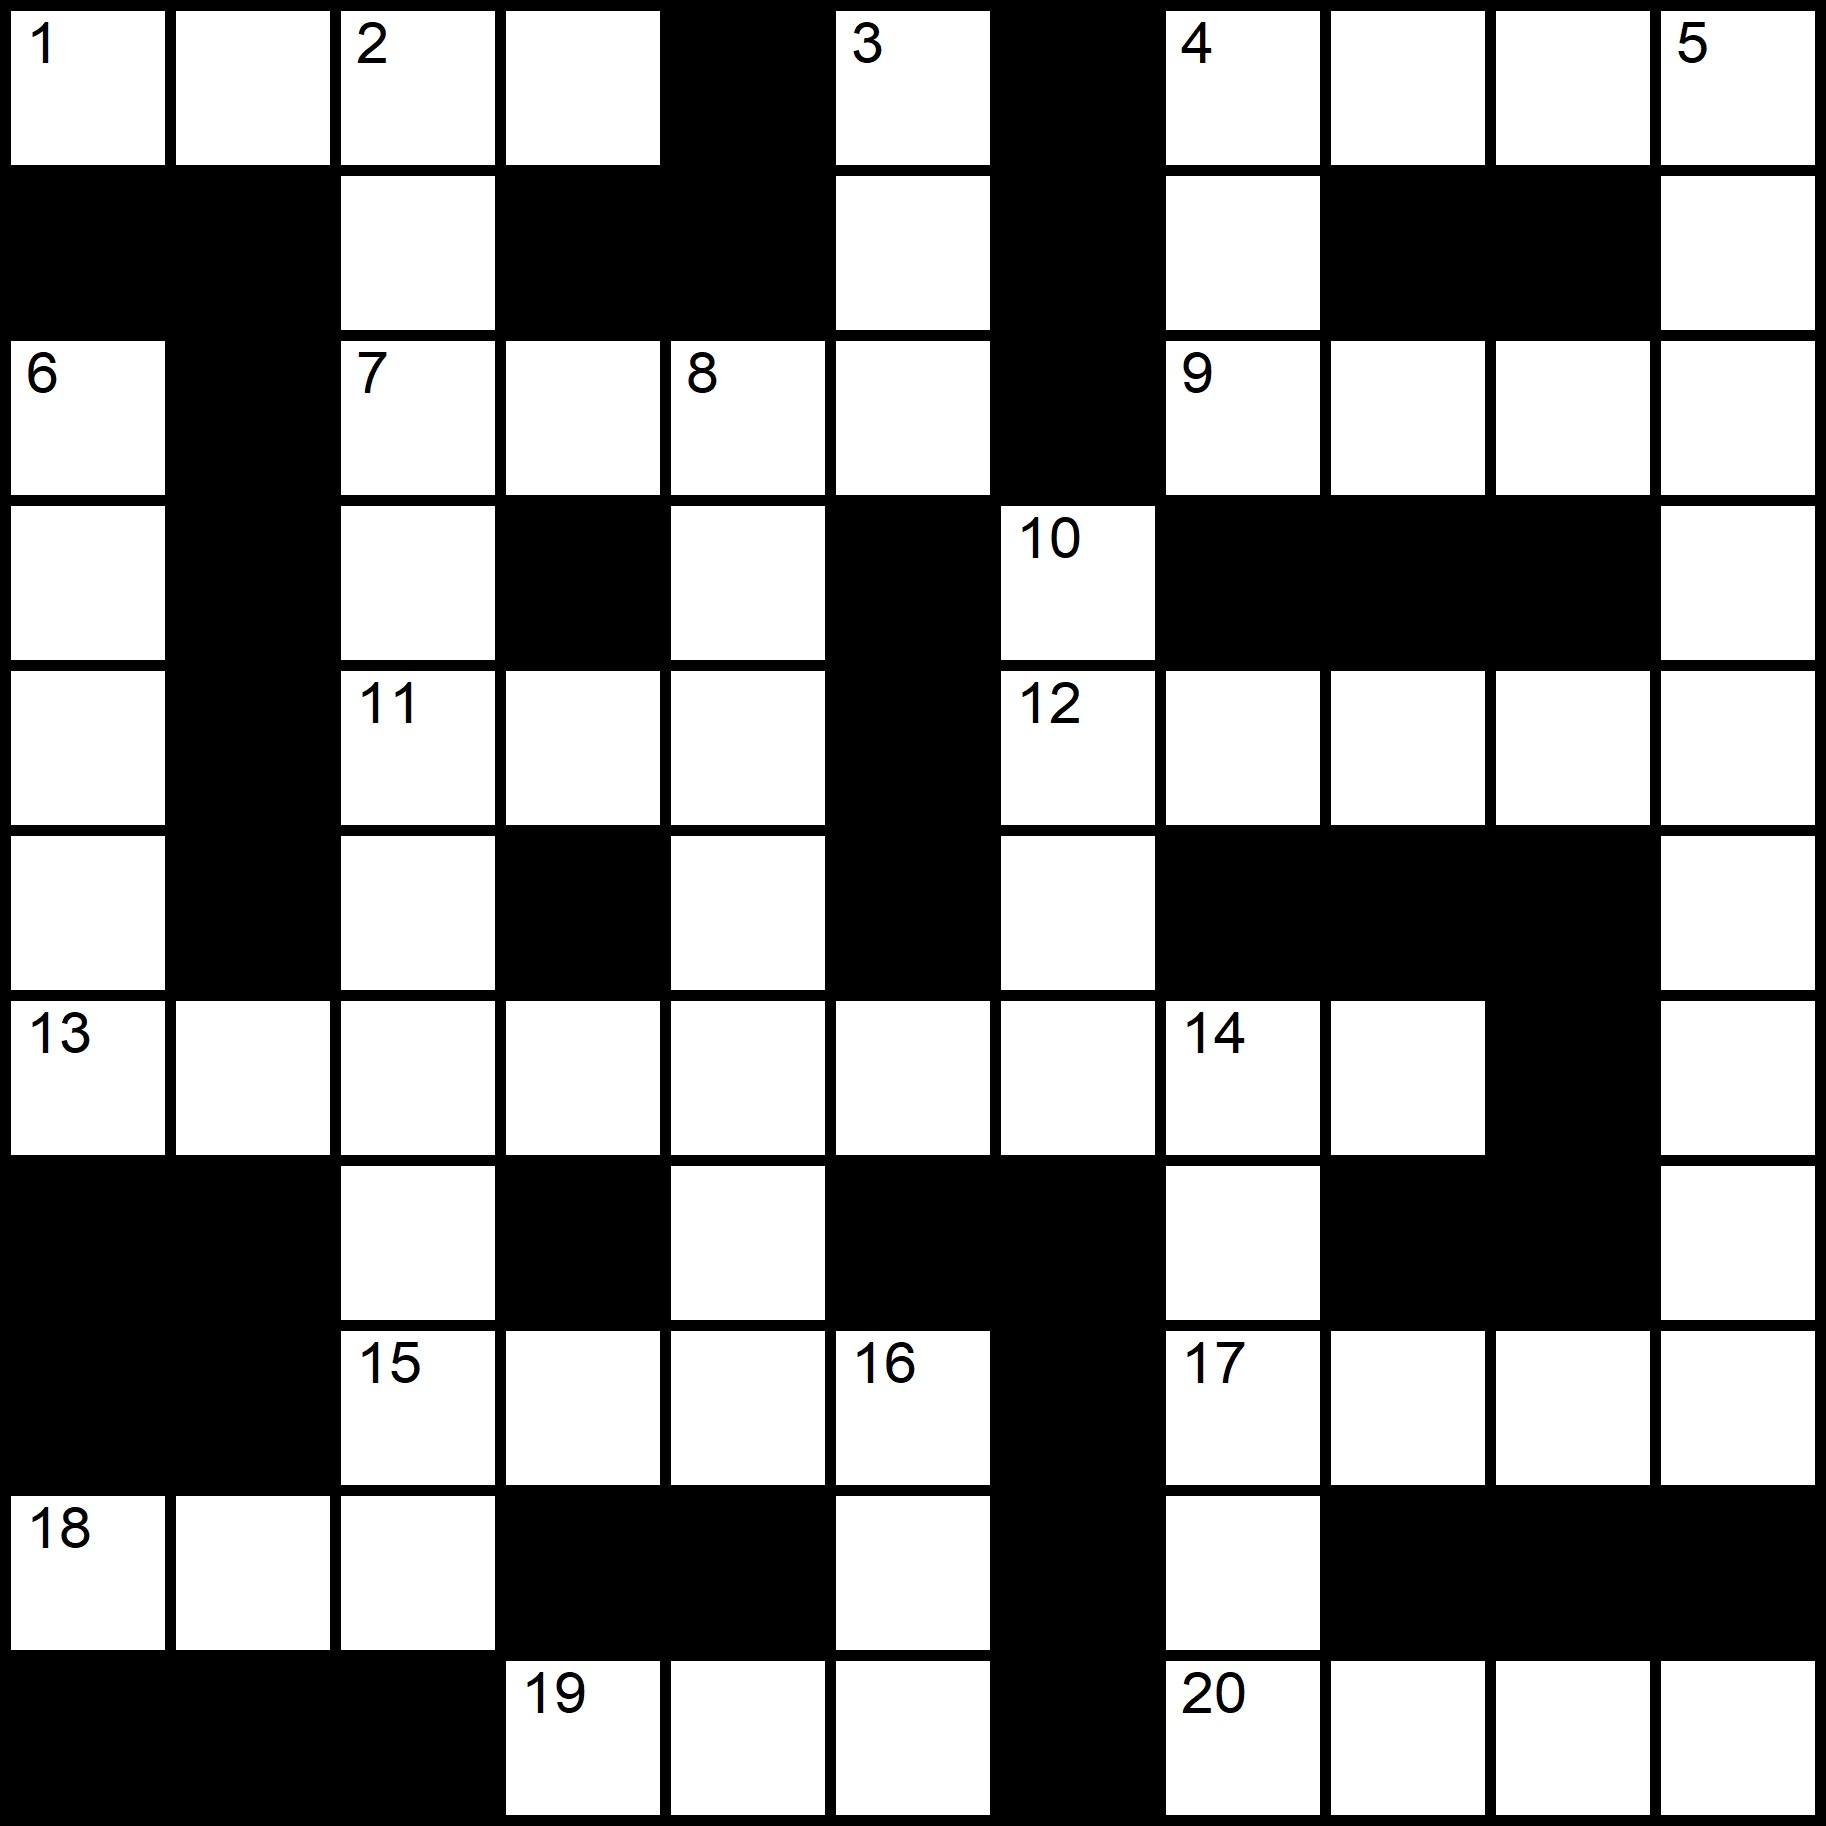 Simple Crossword Puzzles - Placidus Flora - Crossword number twenty-two